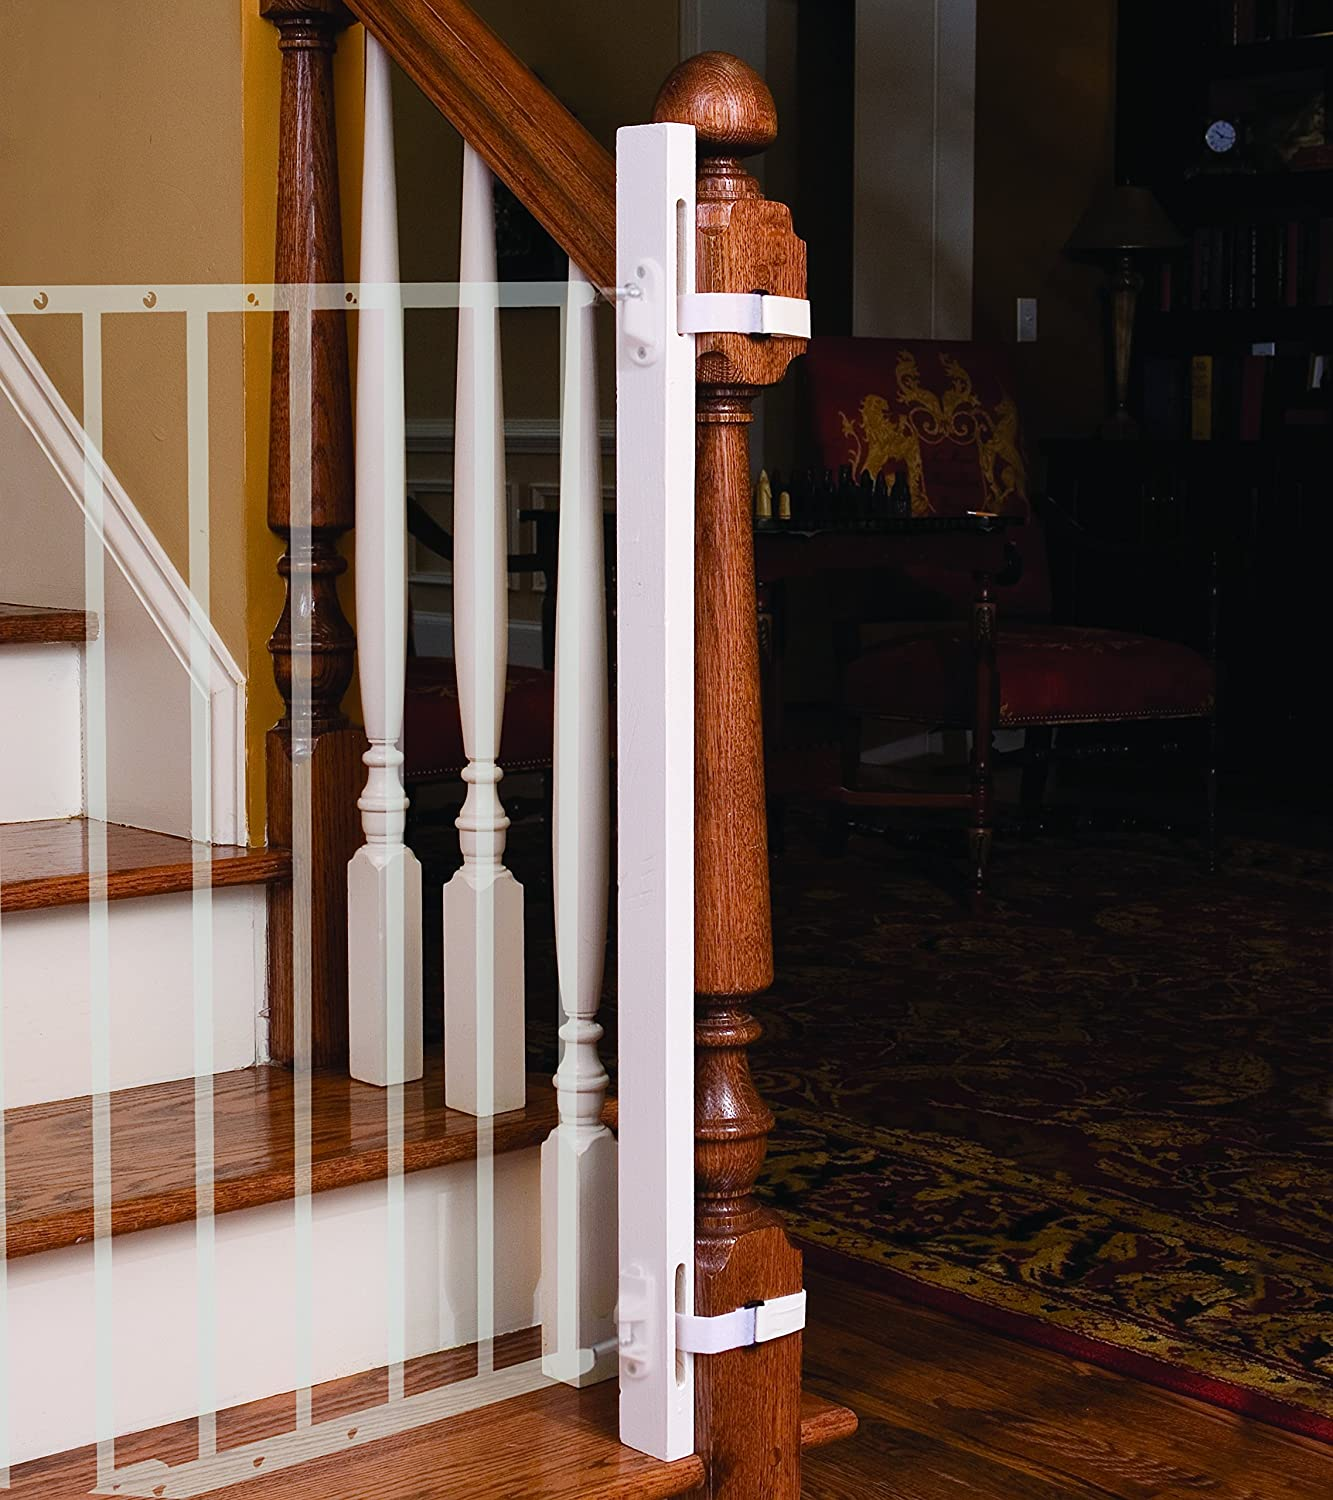 EZ-Fit Baby Safety Gate Adapter Kit - Protect Banisters and Walls - Great for Children and Pets - ONLY Includes (1) one adapter side - Please review all bullets and description prior to purchase LPA1 LP-ADAPTGATE-WHITE